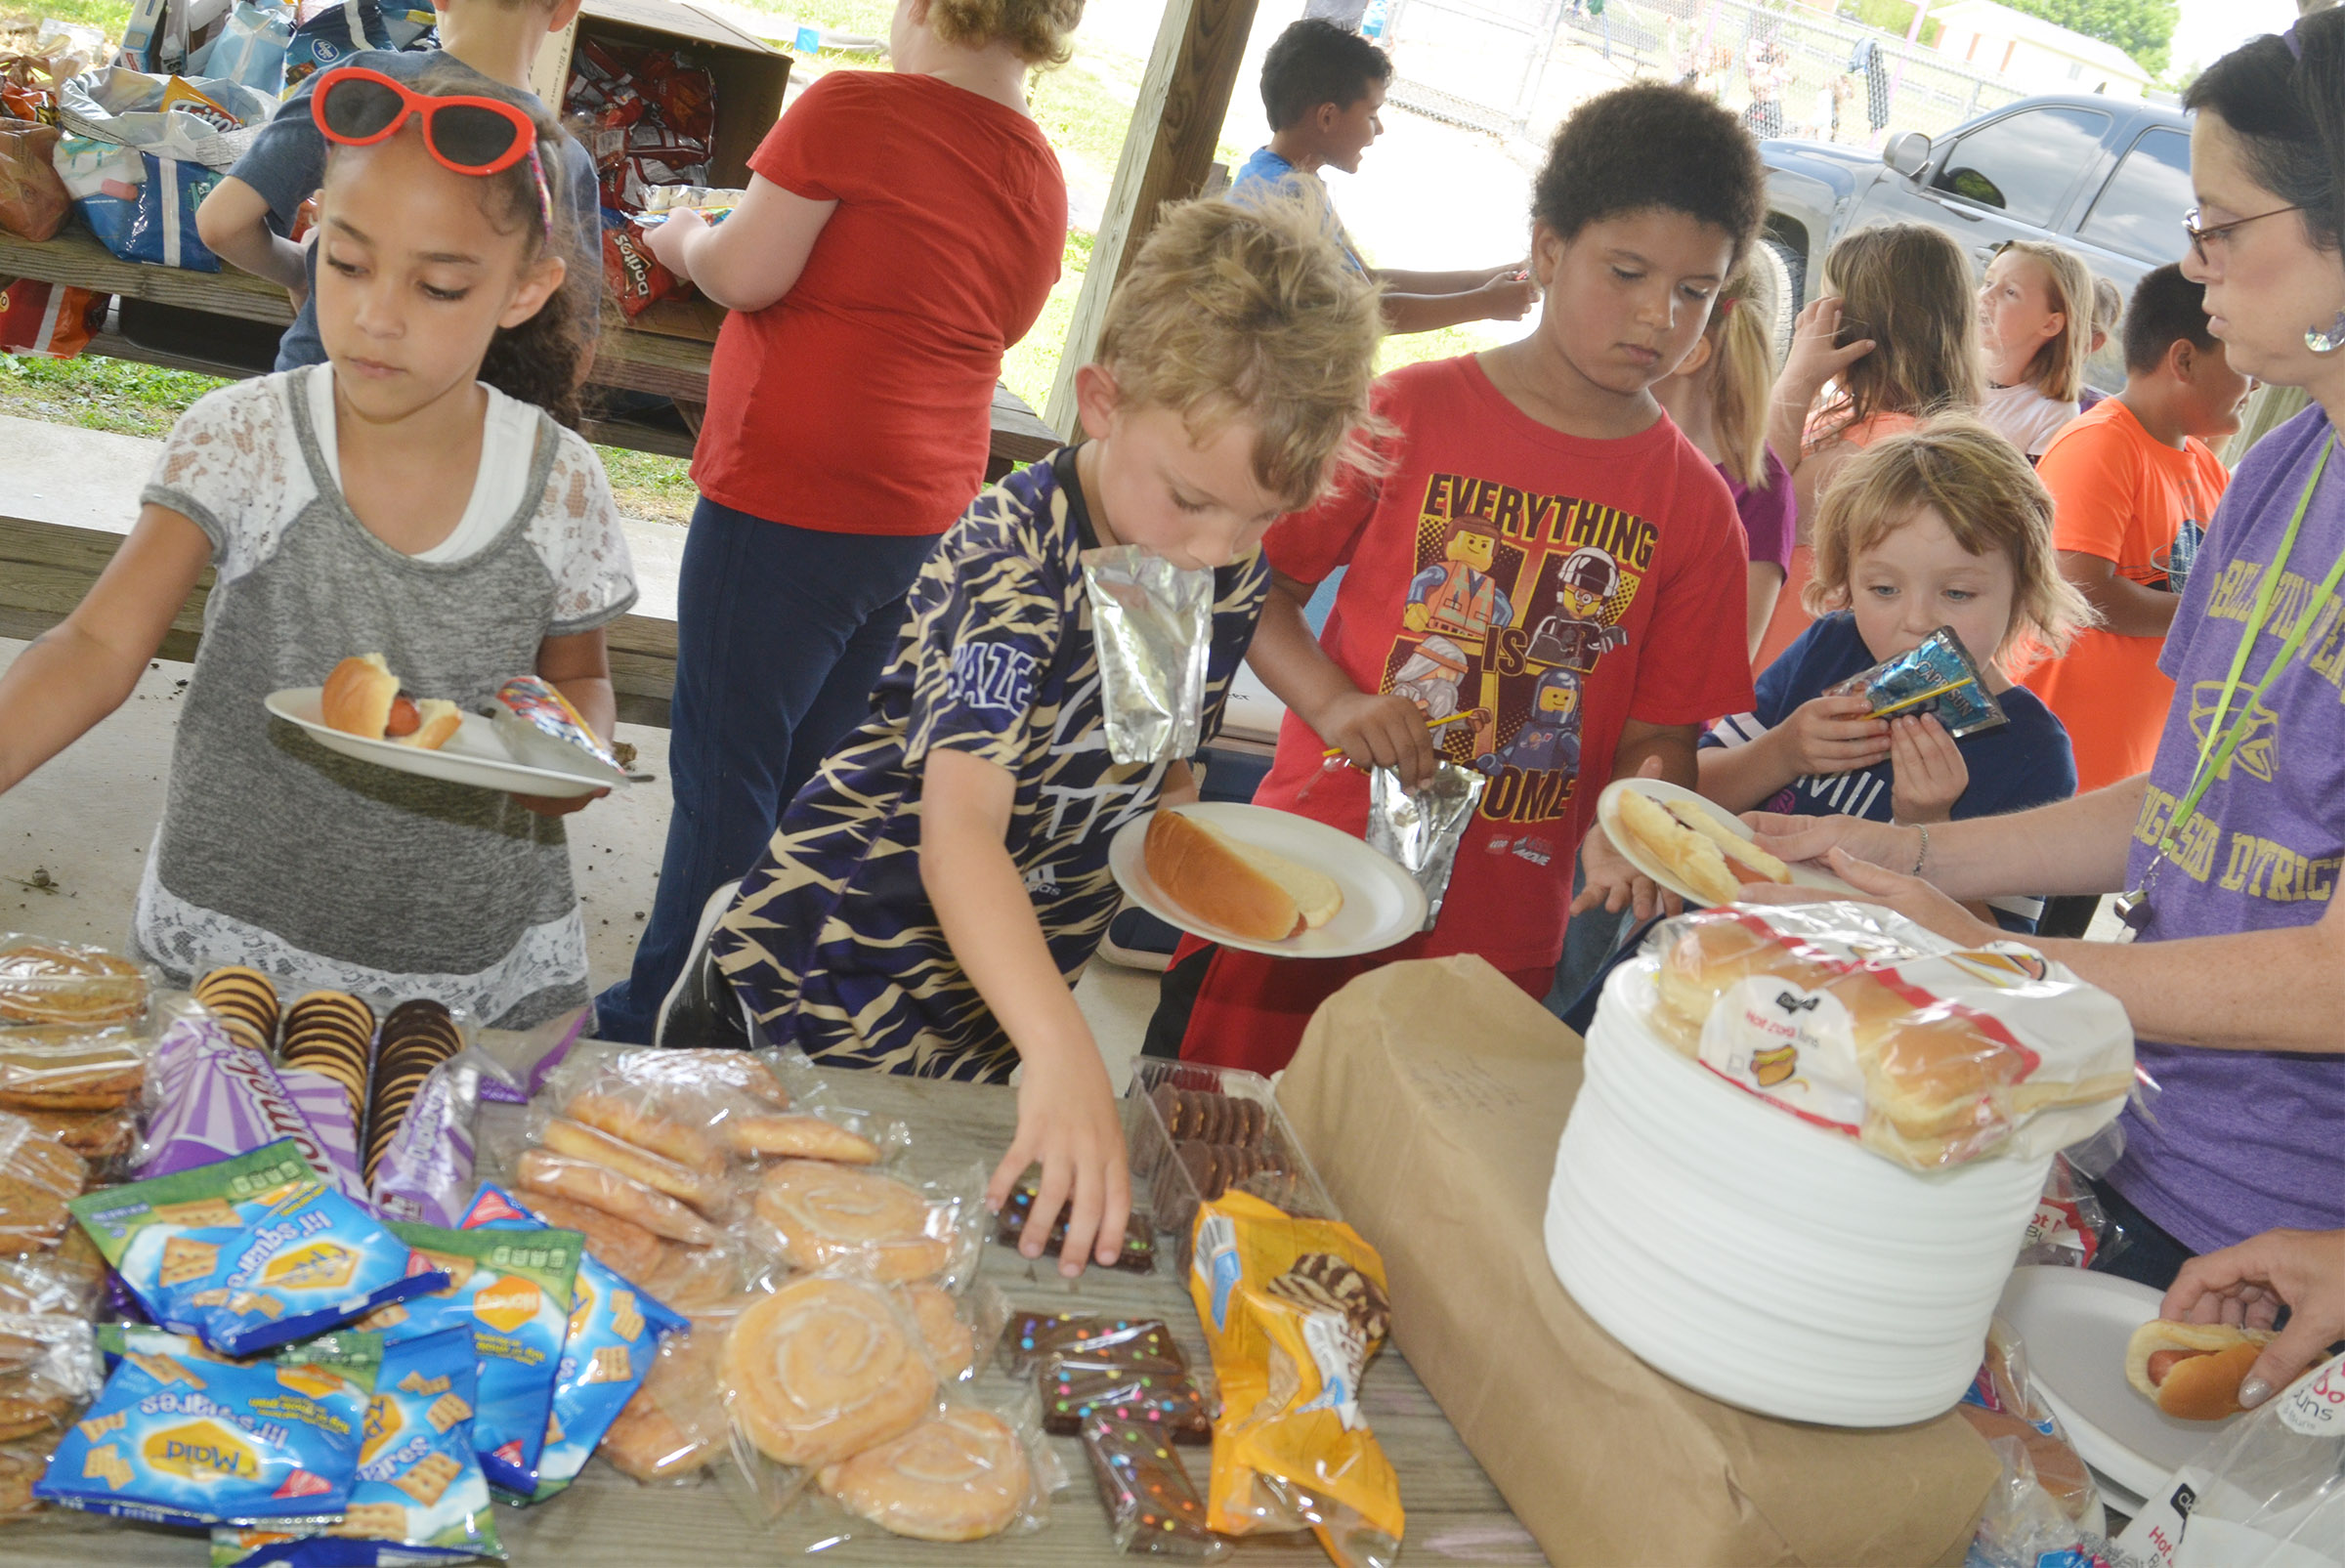 CES first-graders, from left, Essence Hunter, Gabe Prior, Navon Copeland and Mylee Bell get food at their cookout.